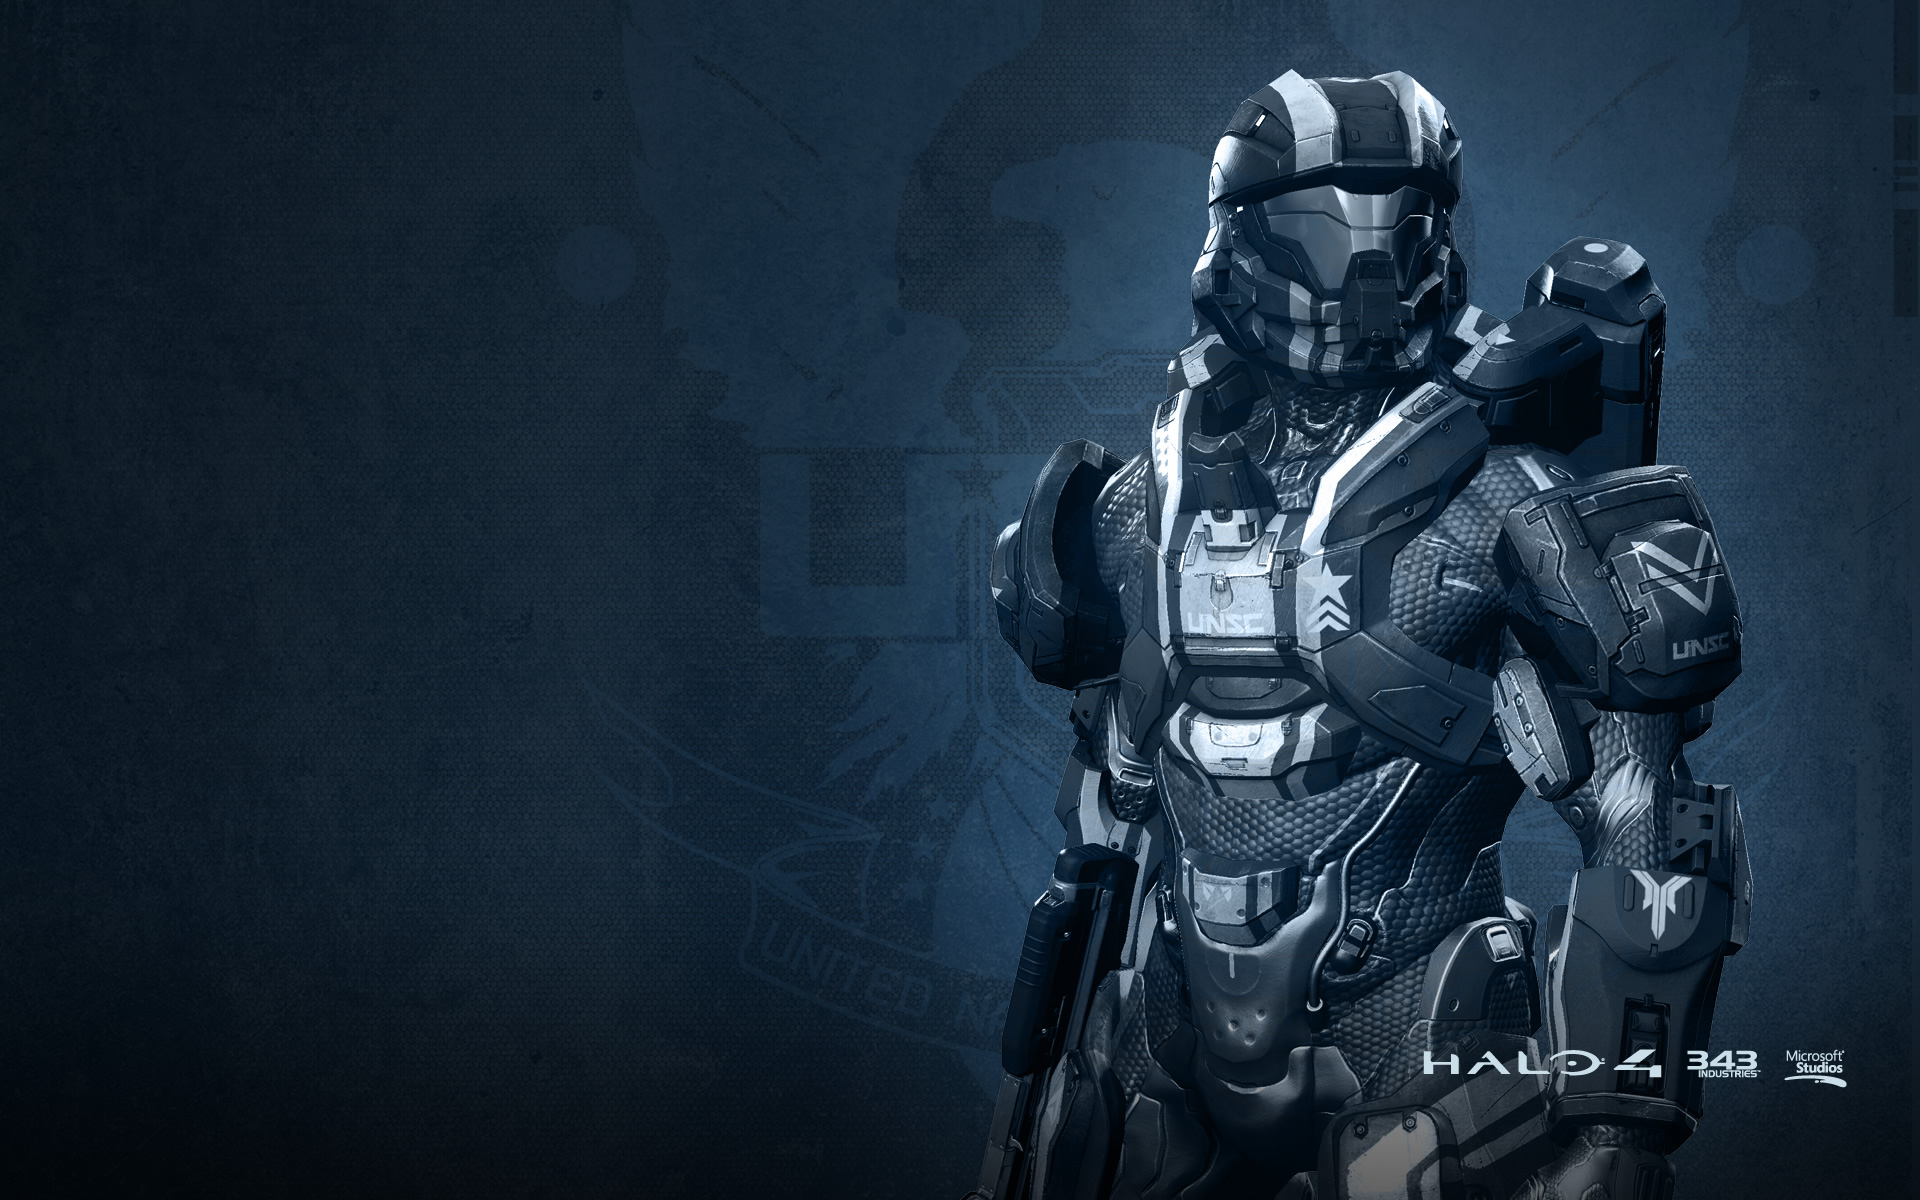 Halo 4 wallpapers 6 HQ Wallpapers 1920x1200